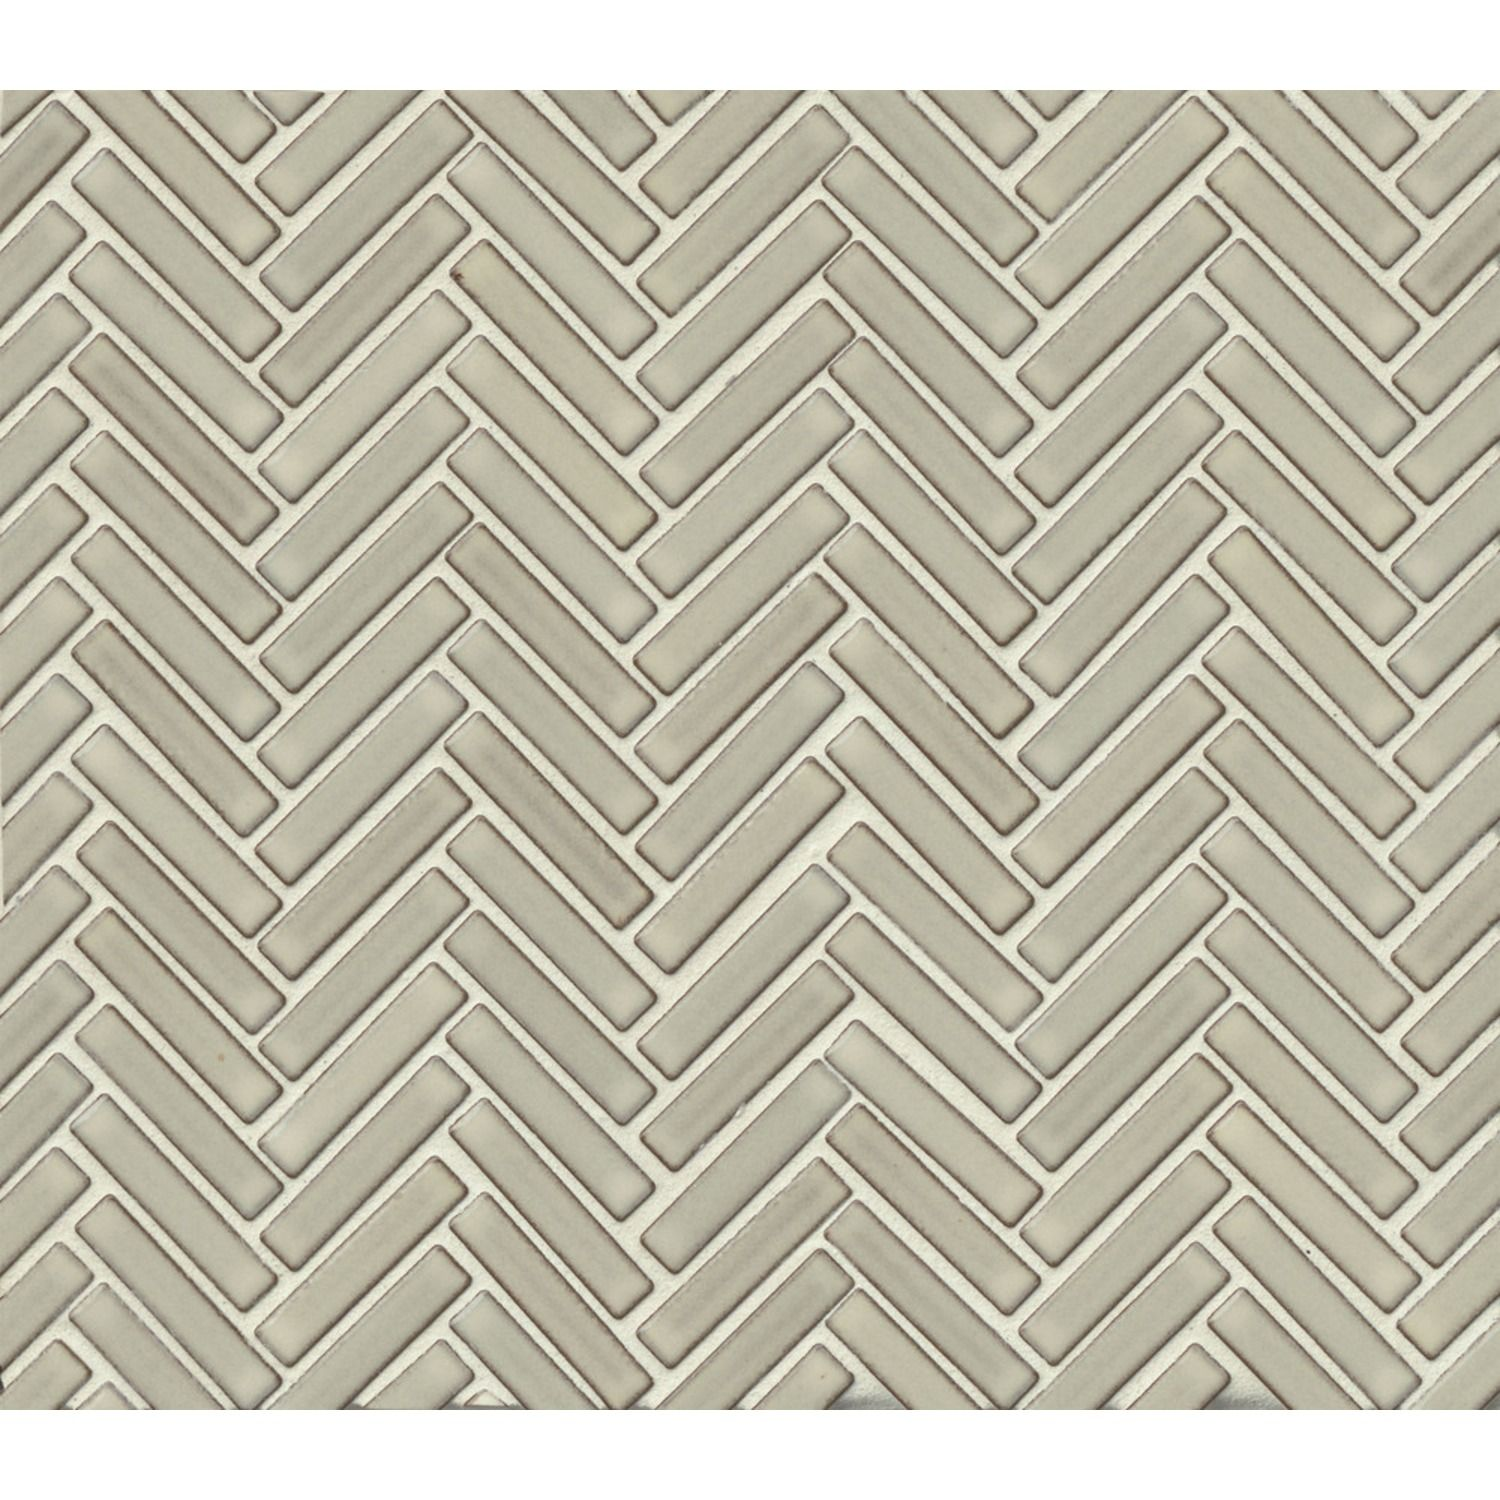 90 1 2 X 2 Floor Wall Mosaic In Putty Porcelain Mosaic Mosaic Pebble Mosaic Tile